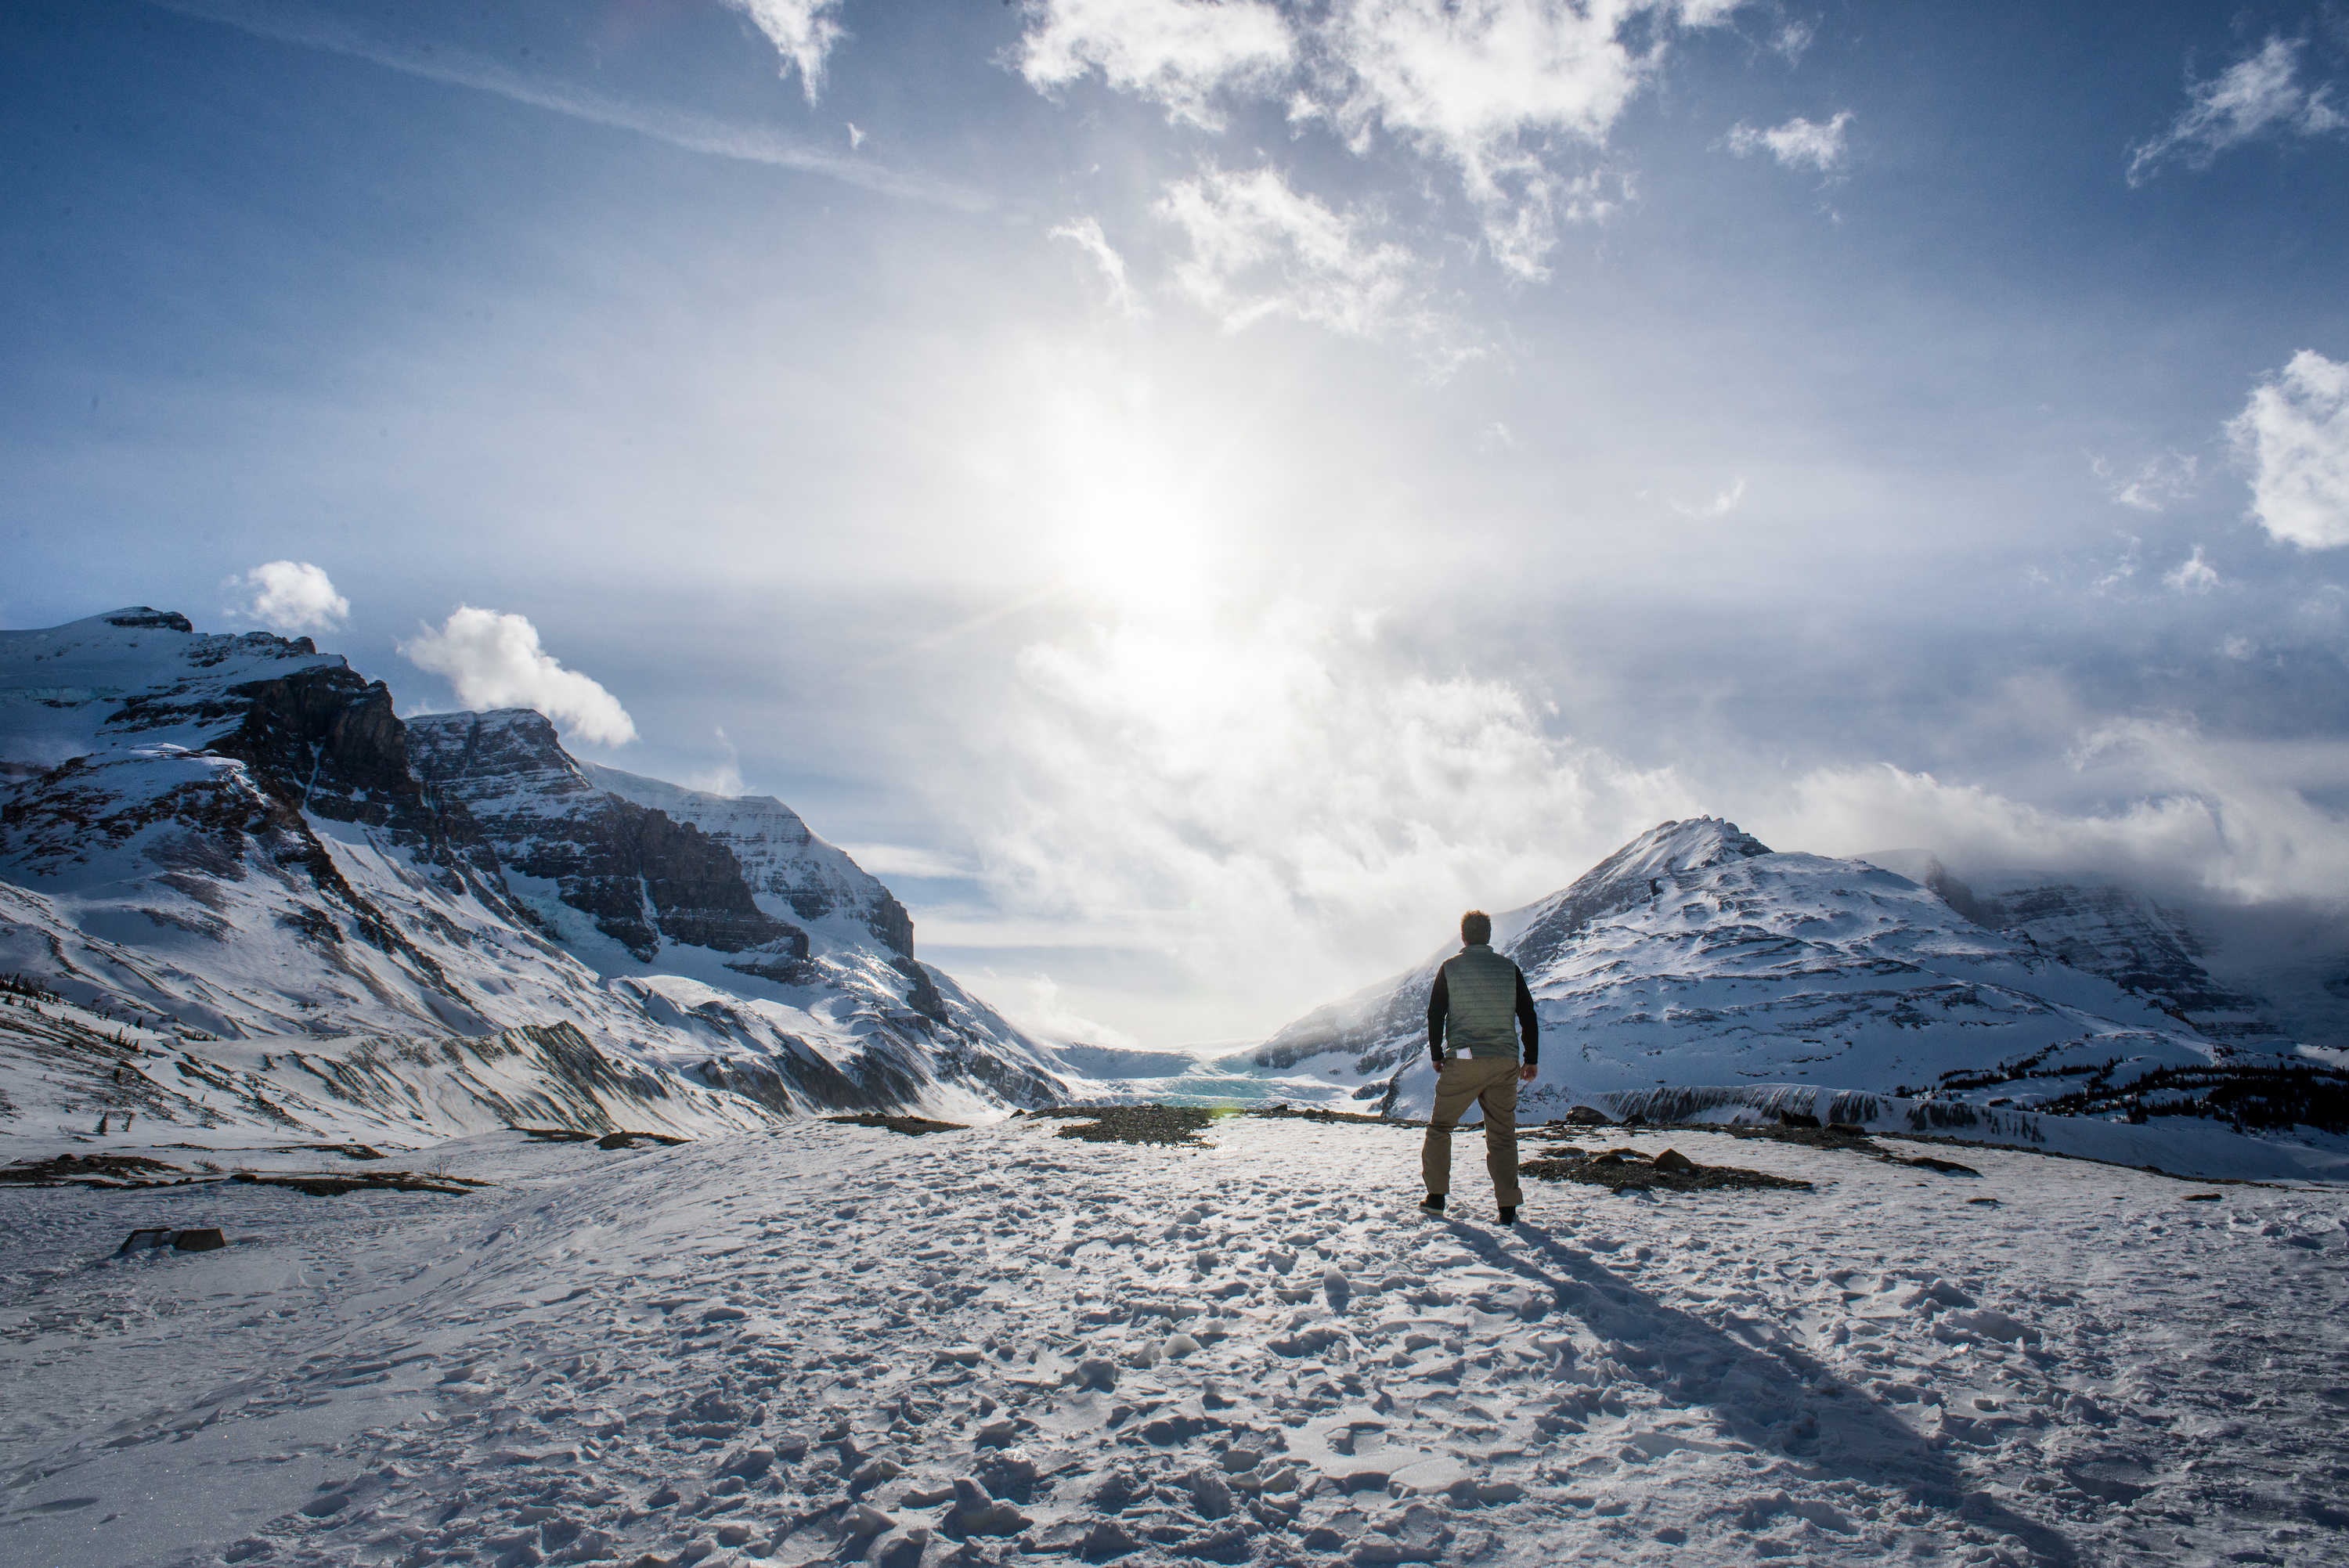 The Best Canadian Winter Adventures According to Travel Bloggers  